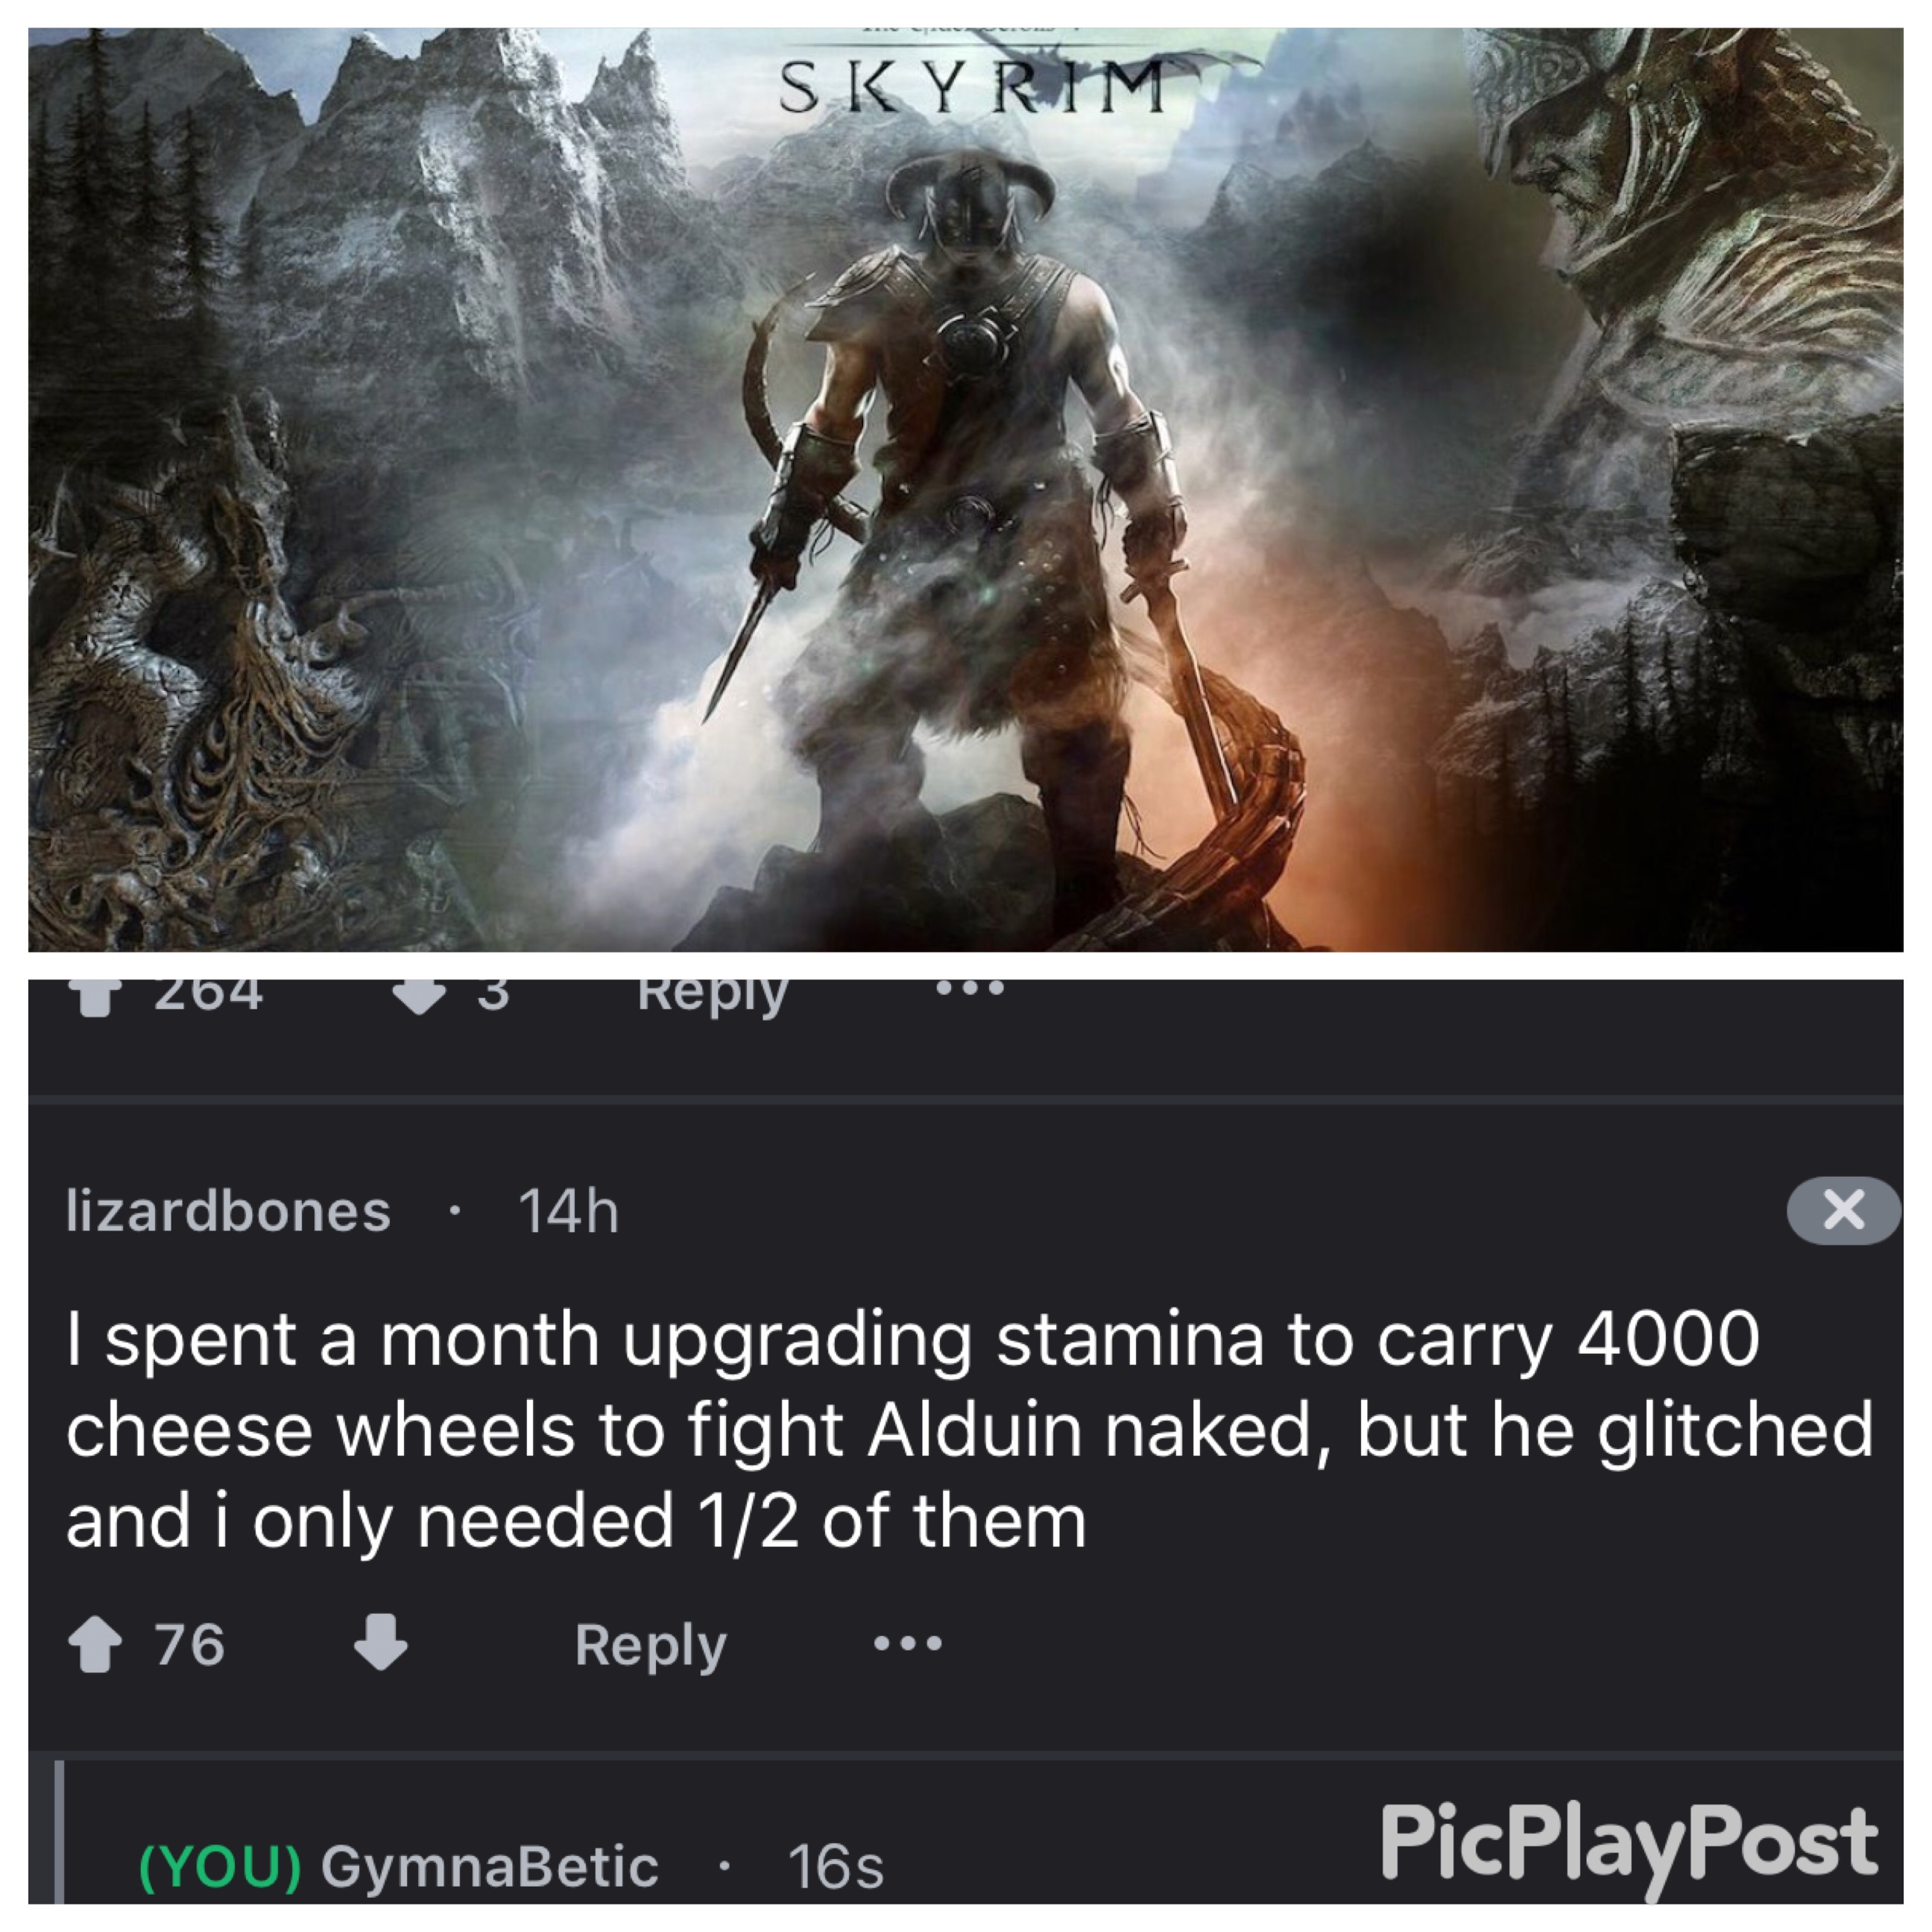 19 - Skyrim meme of someone who carried many wheels of cheese and then dropped them.